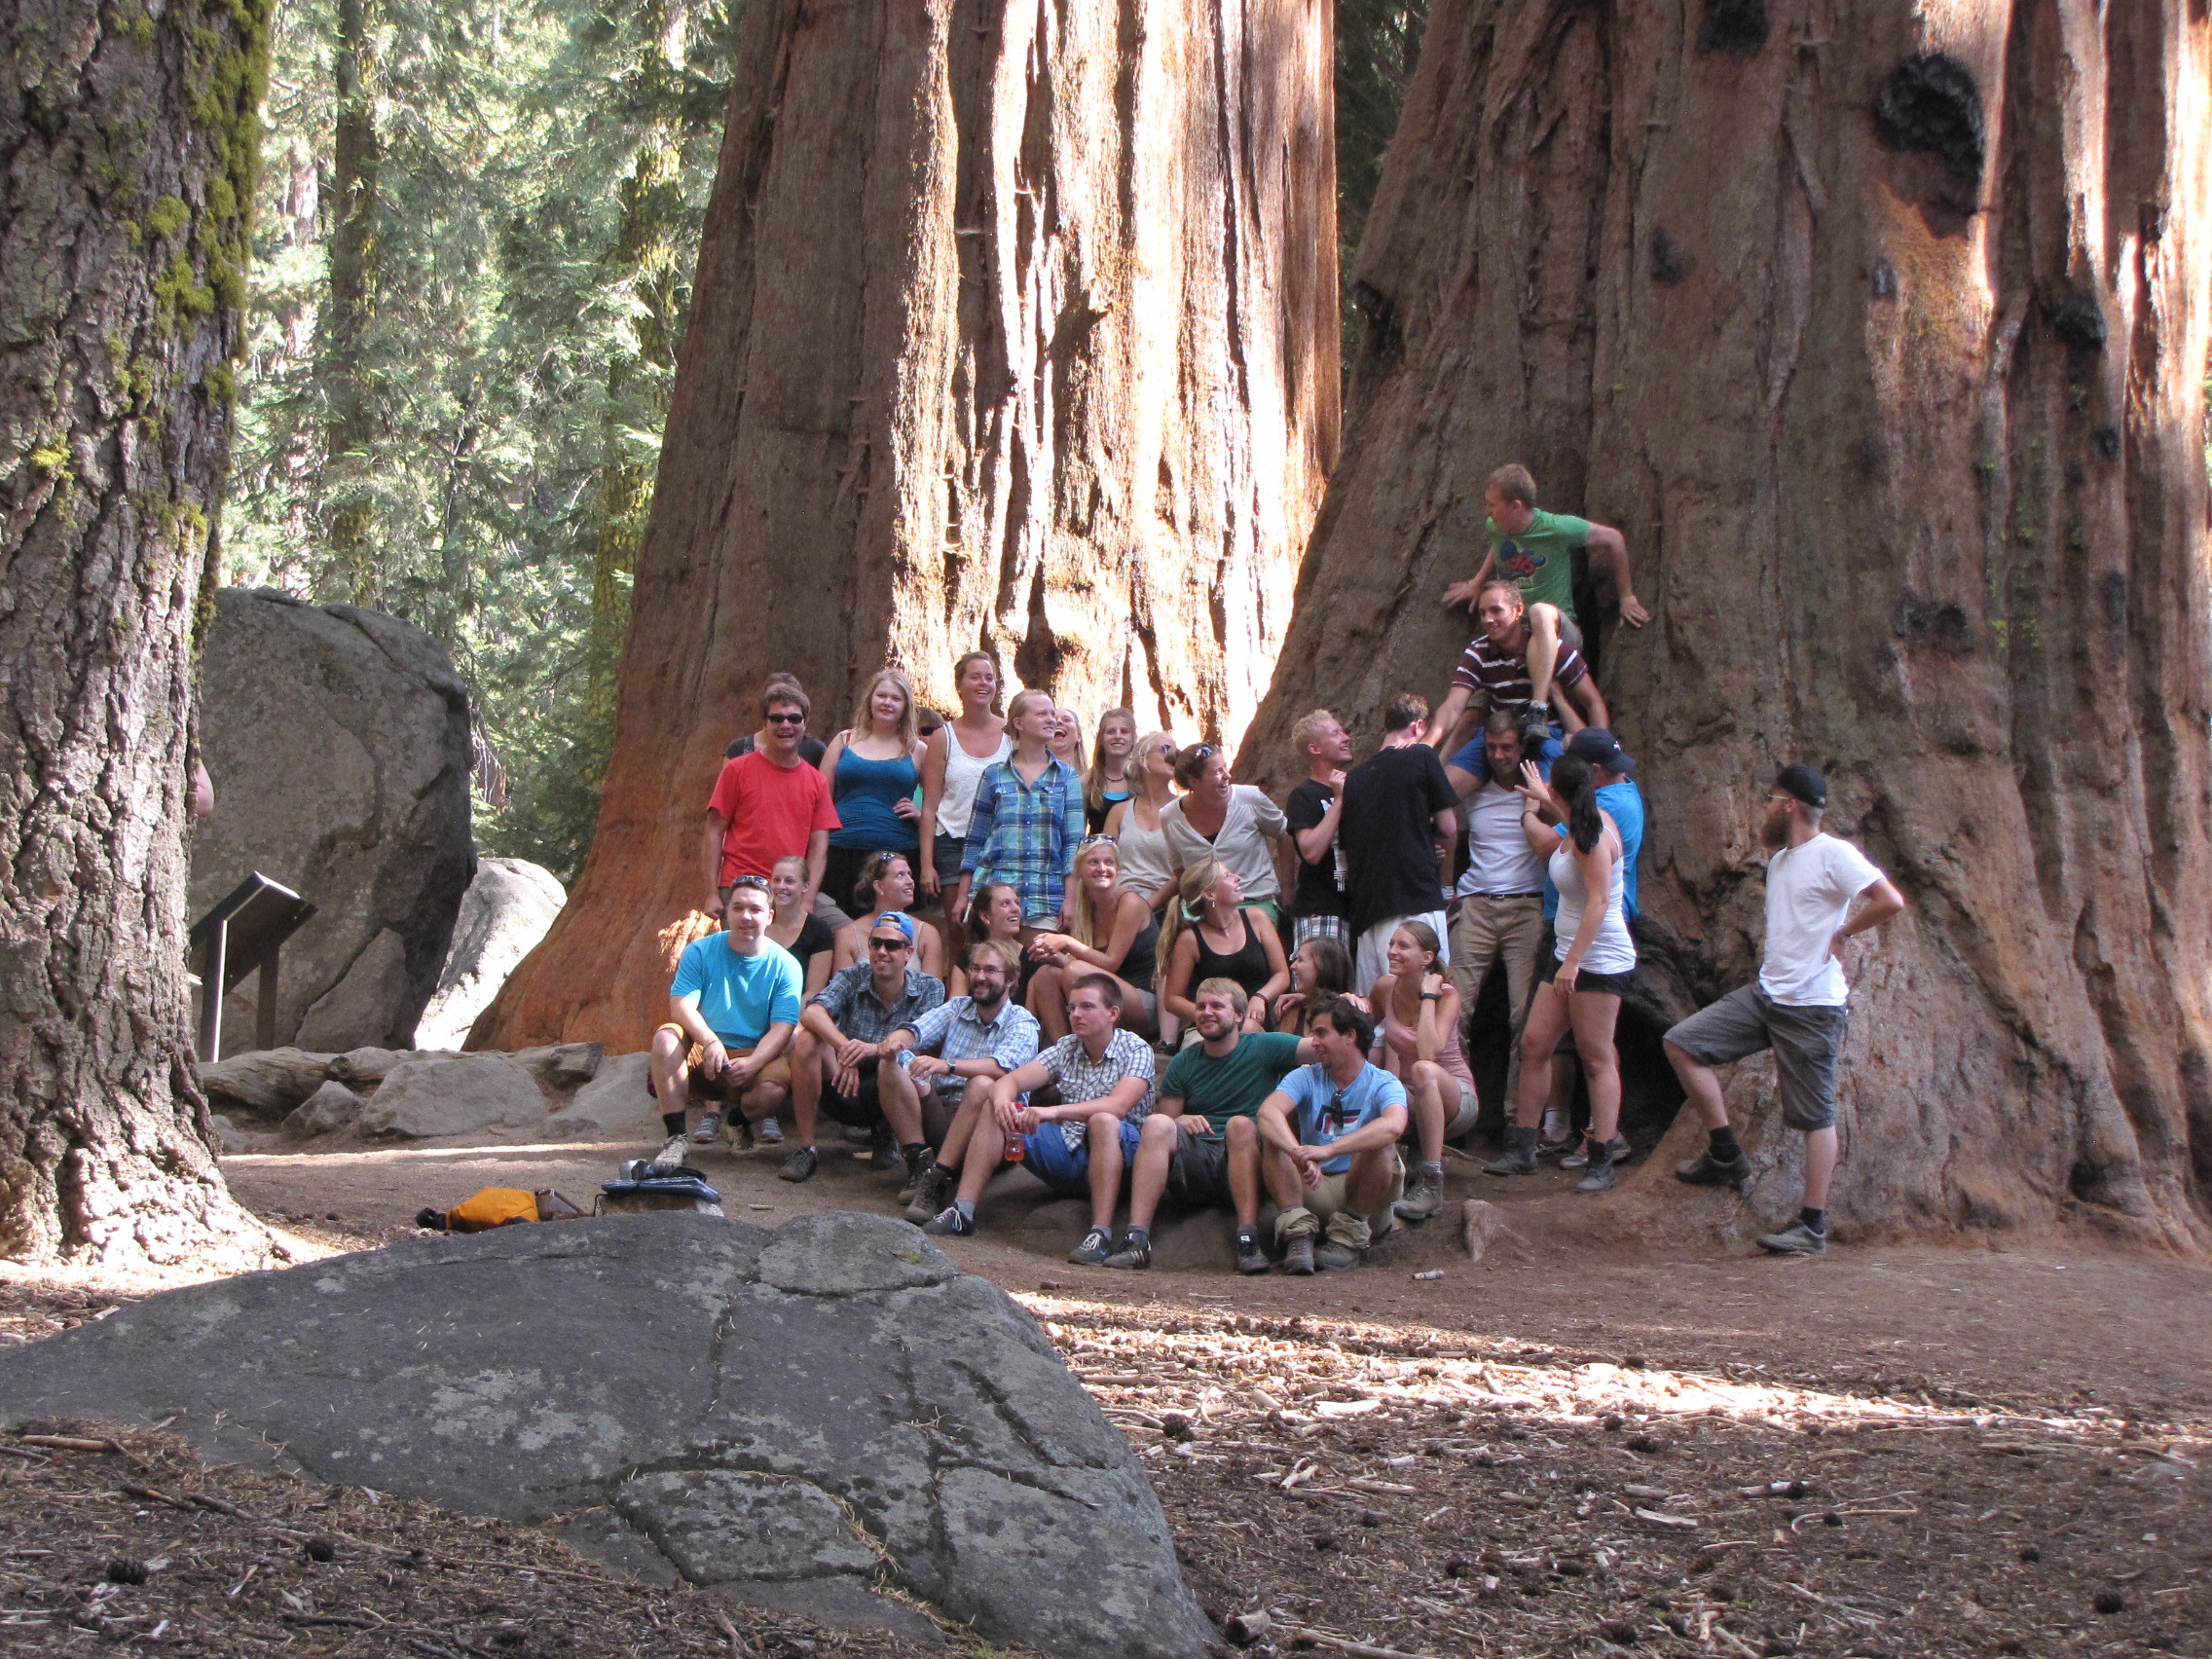 USA_20130931-99-SEQUOIA-NP-GIANT-SEQUOIA-STUDIS.jpg